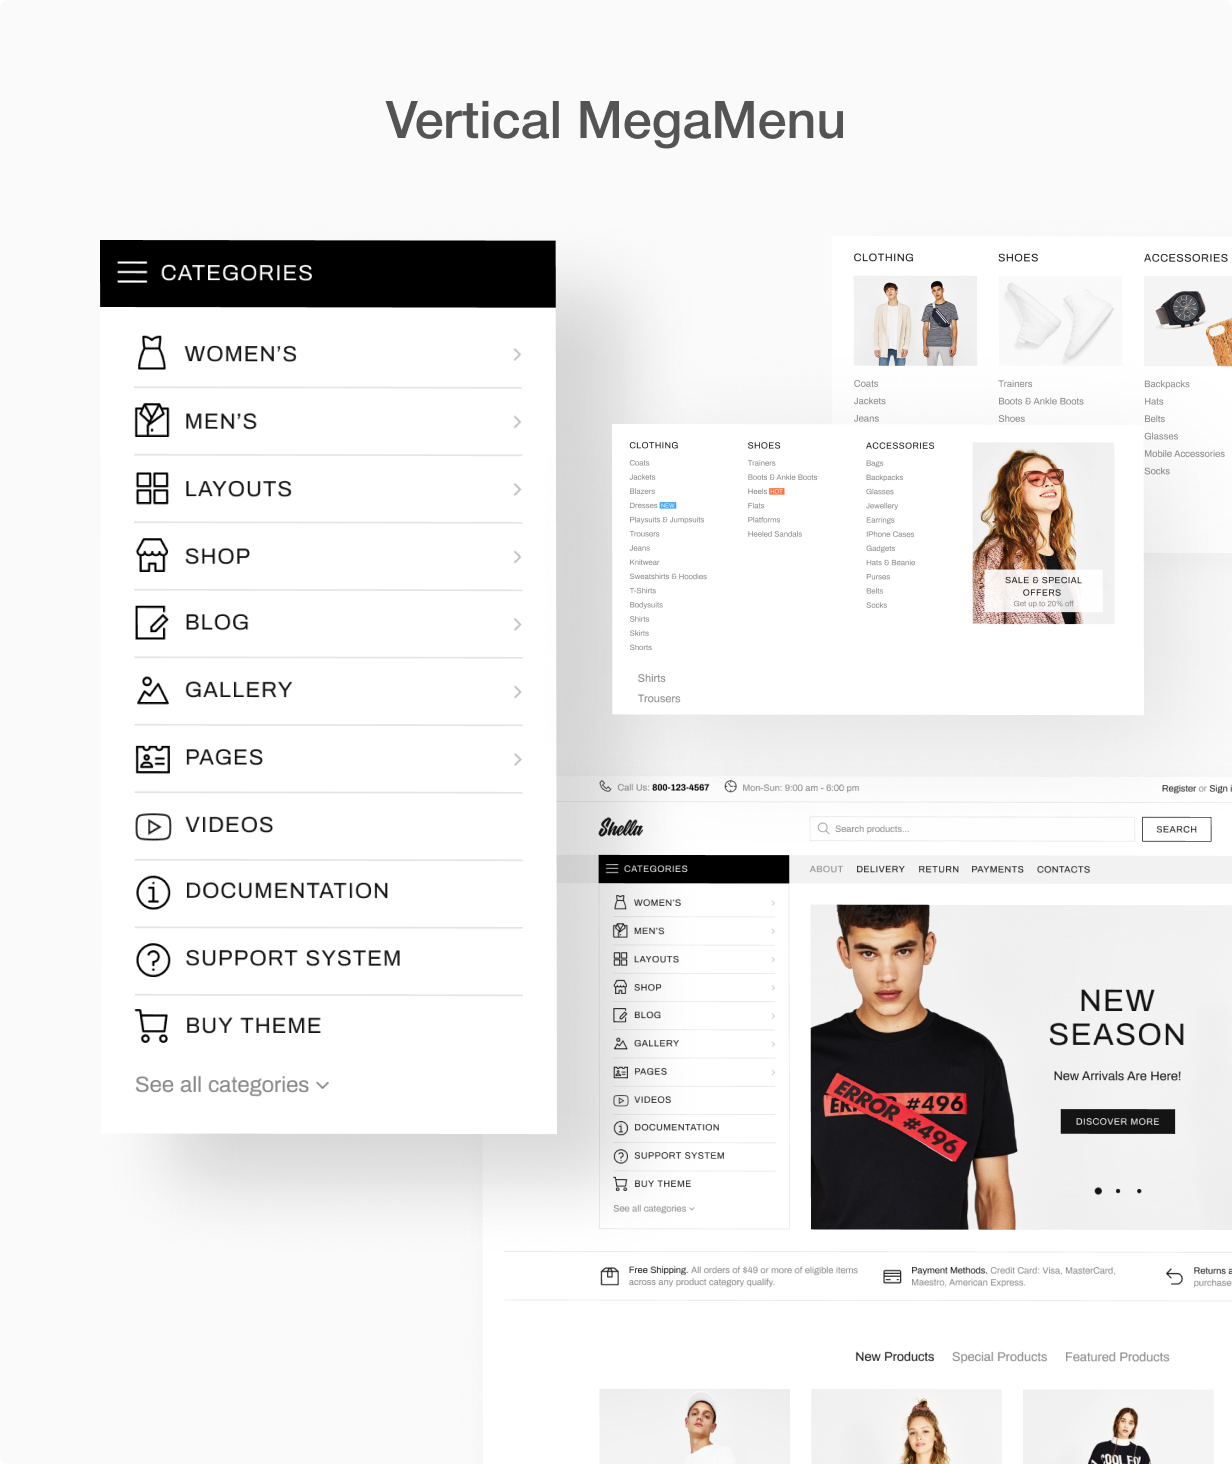 Vertical MegaMenu at Shella Shopify theme